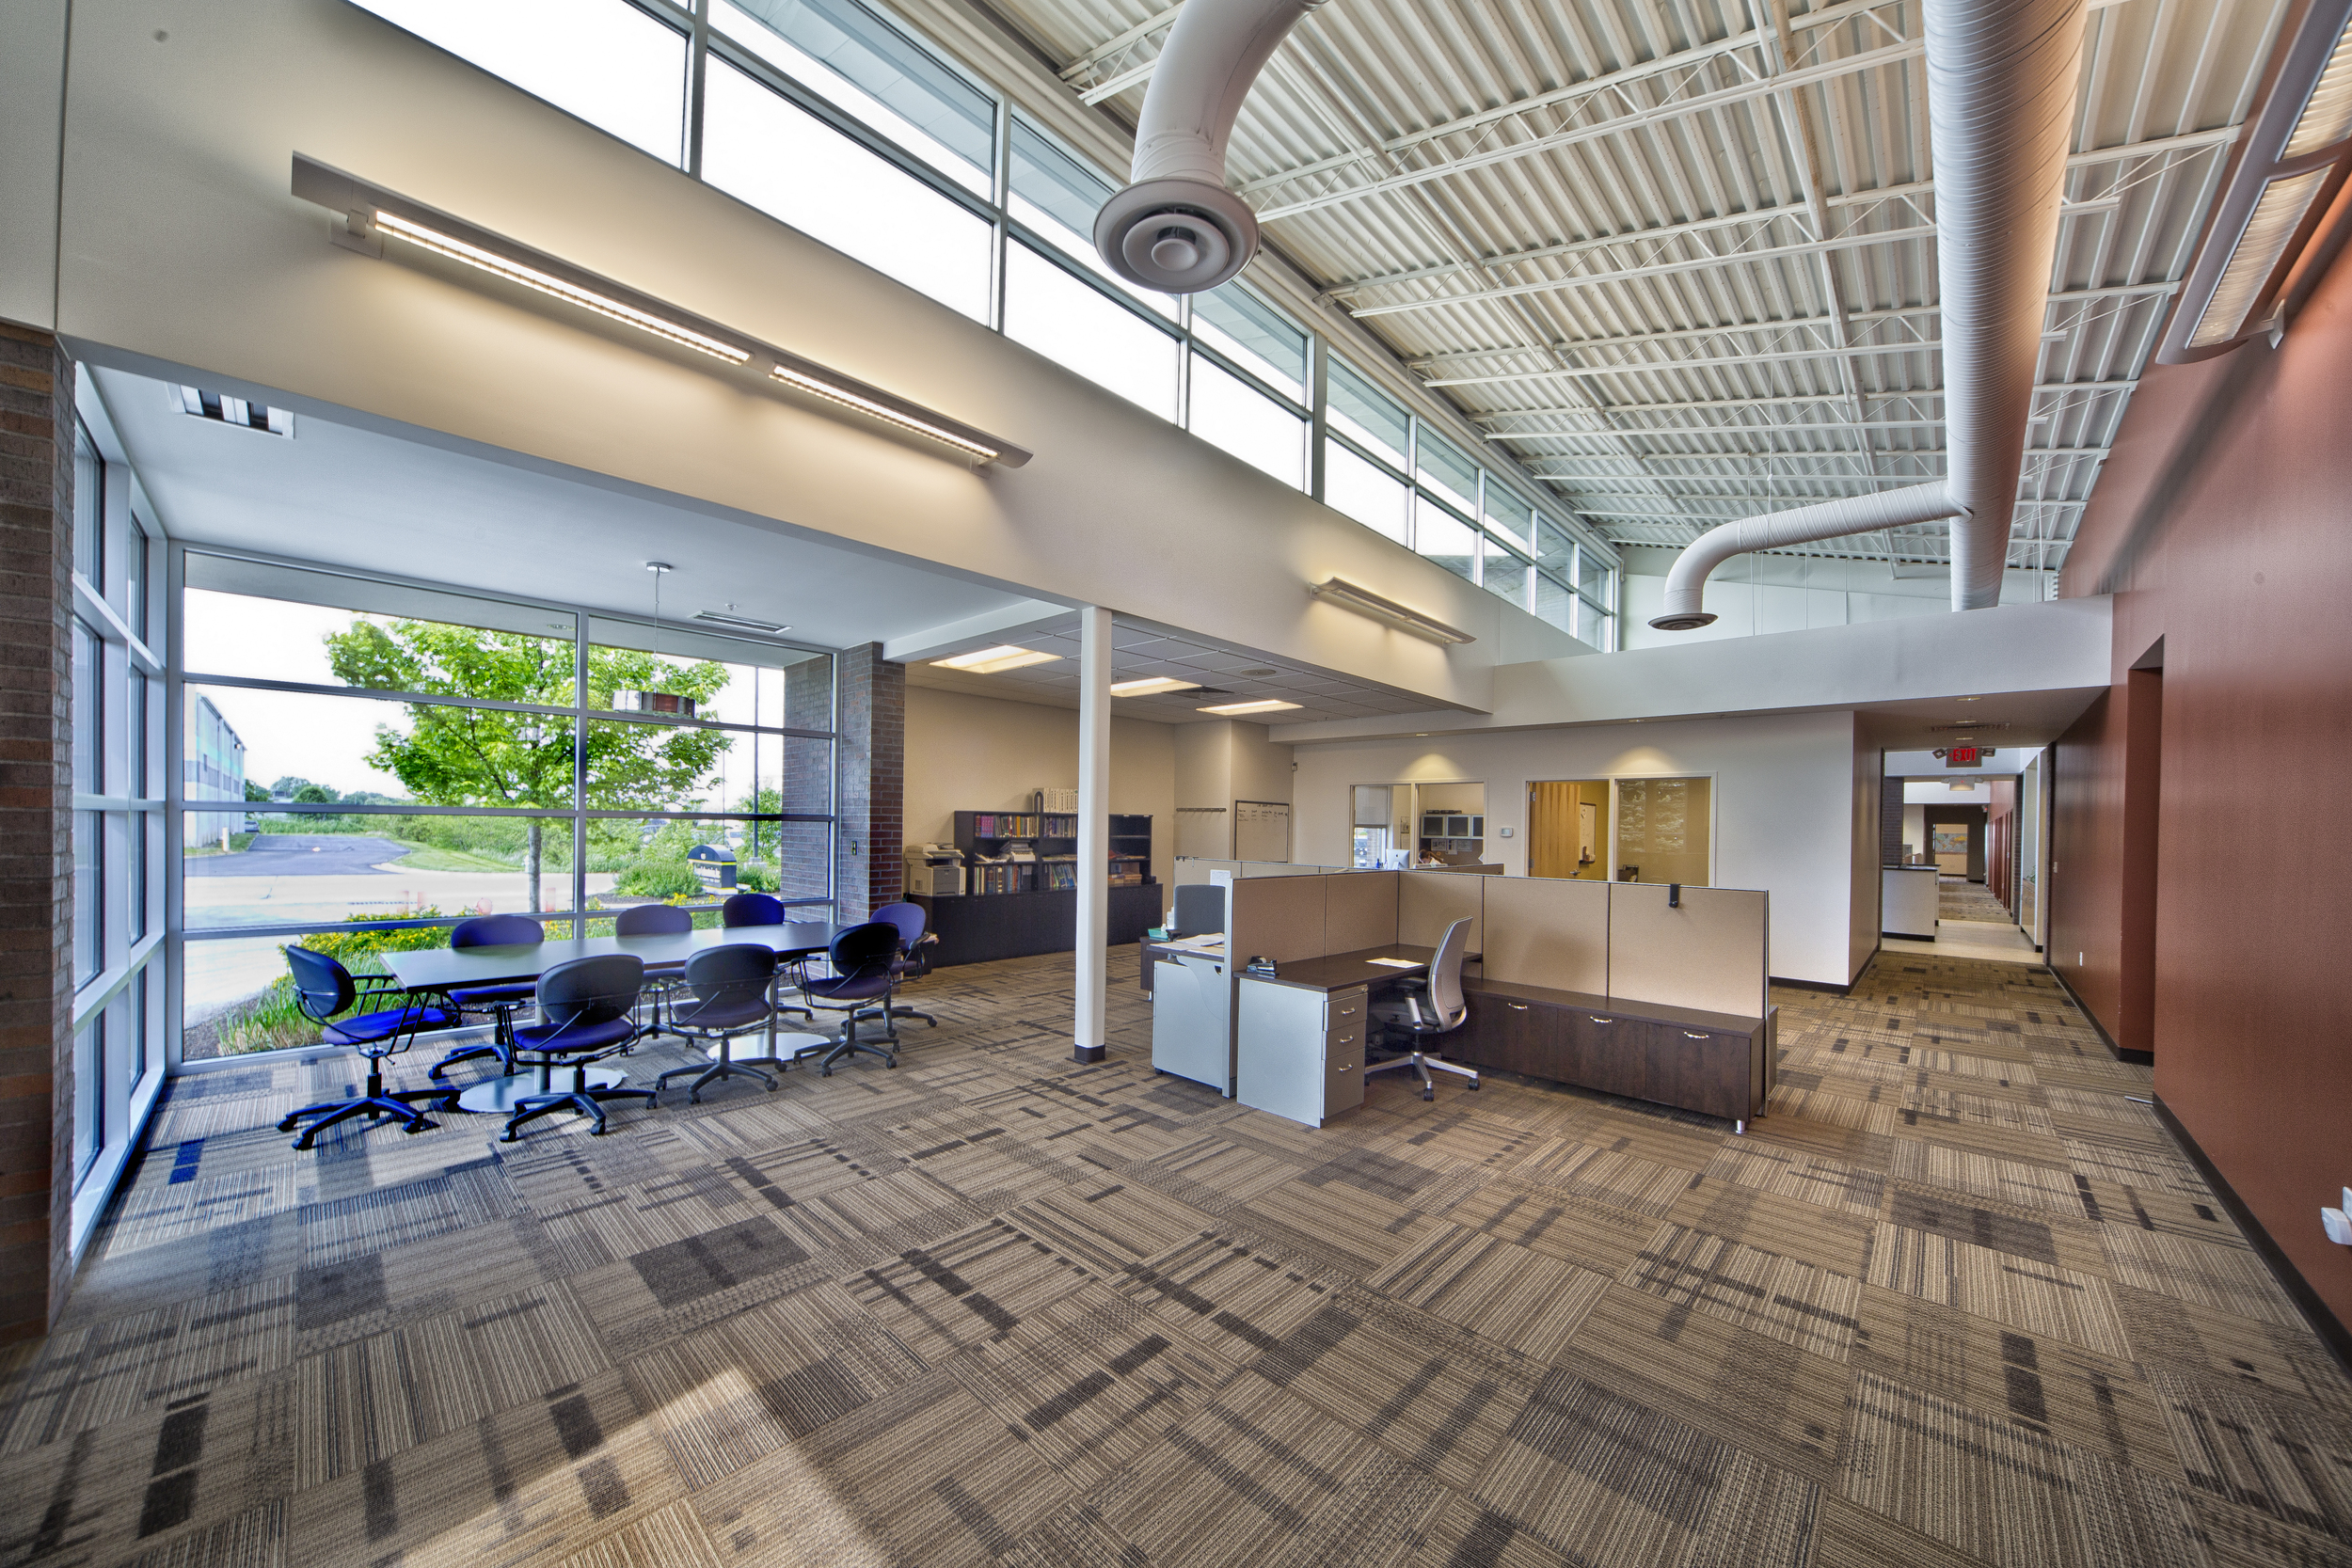 3-laboratory-healthcare-architecture-projects-indiana.jpg